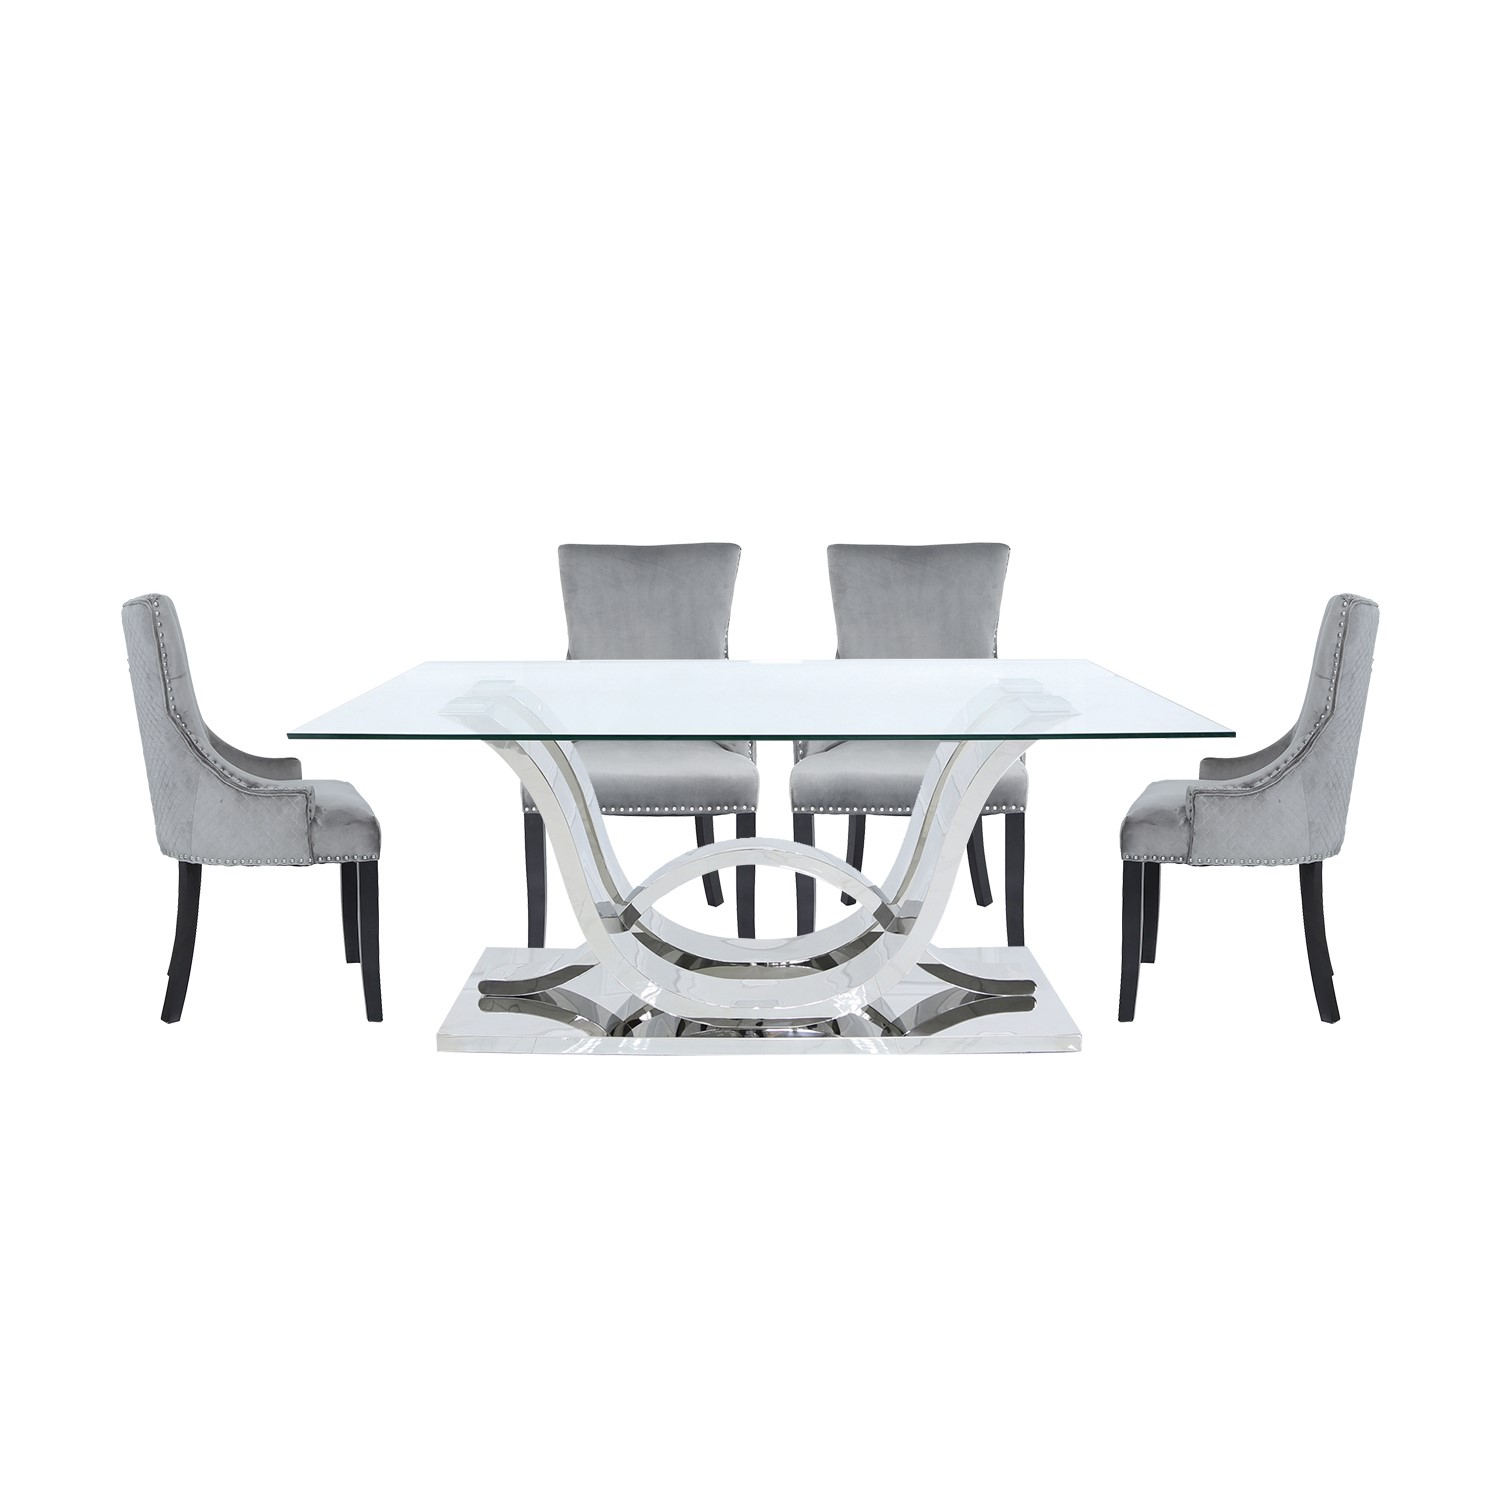 Glass Dining Table & 6 Grey Velvet Chairs - Aurora Boutique